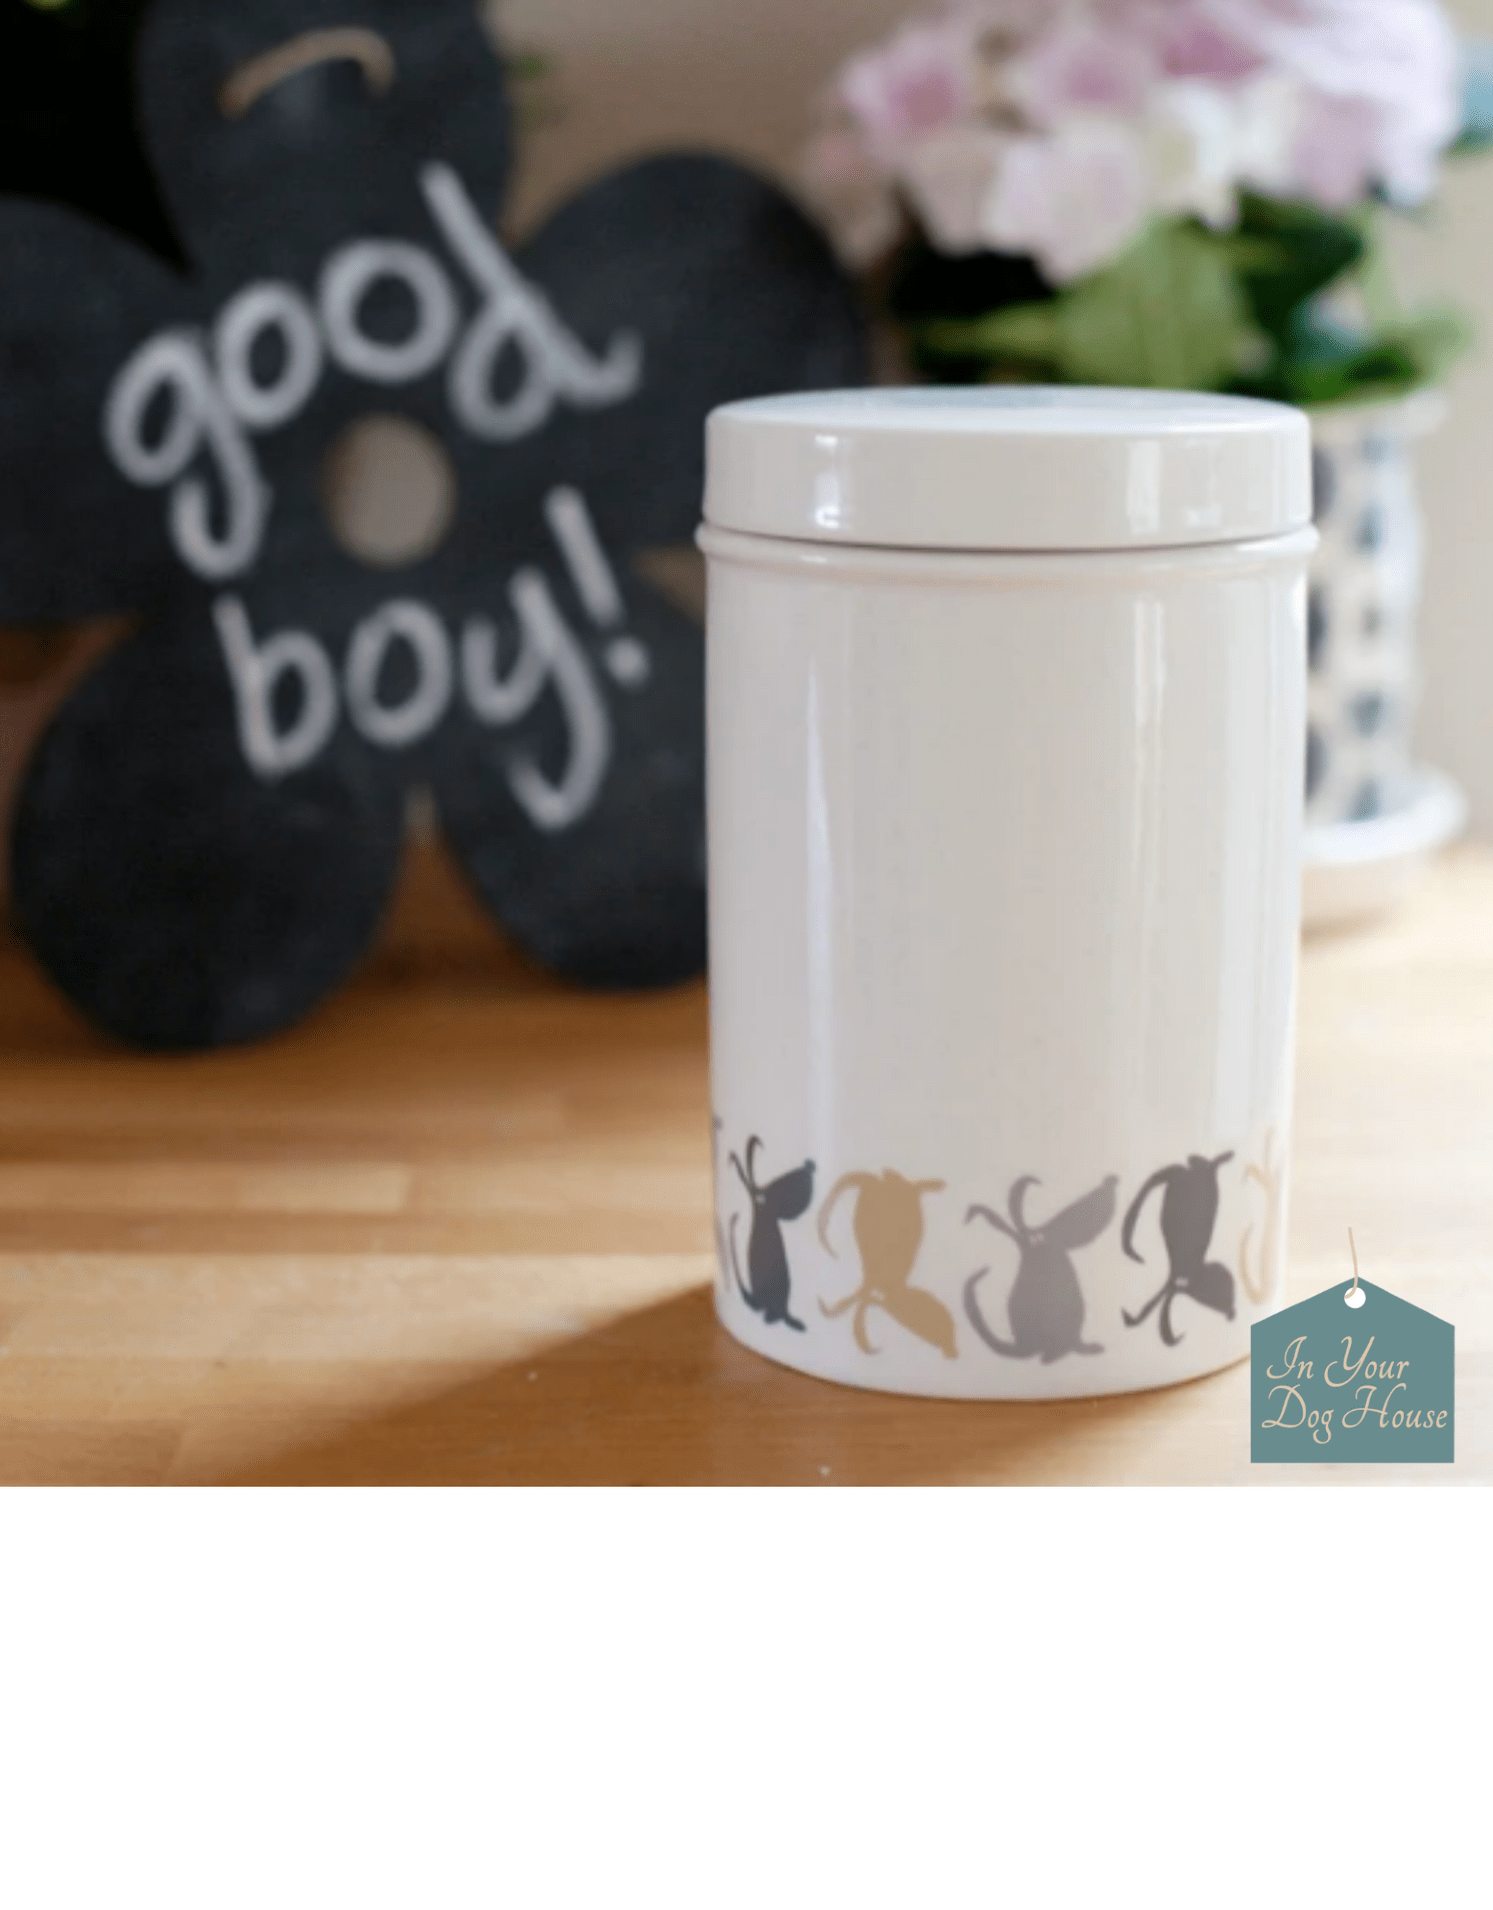 Food Storage for Dogs